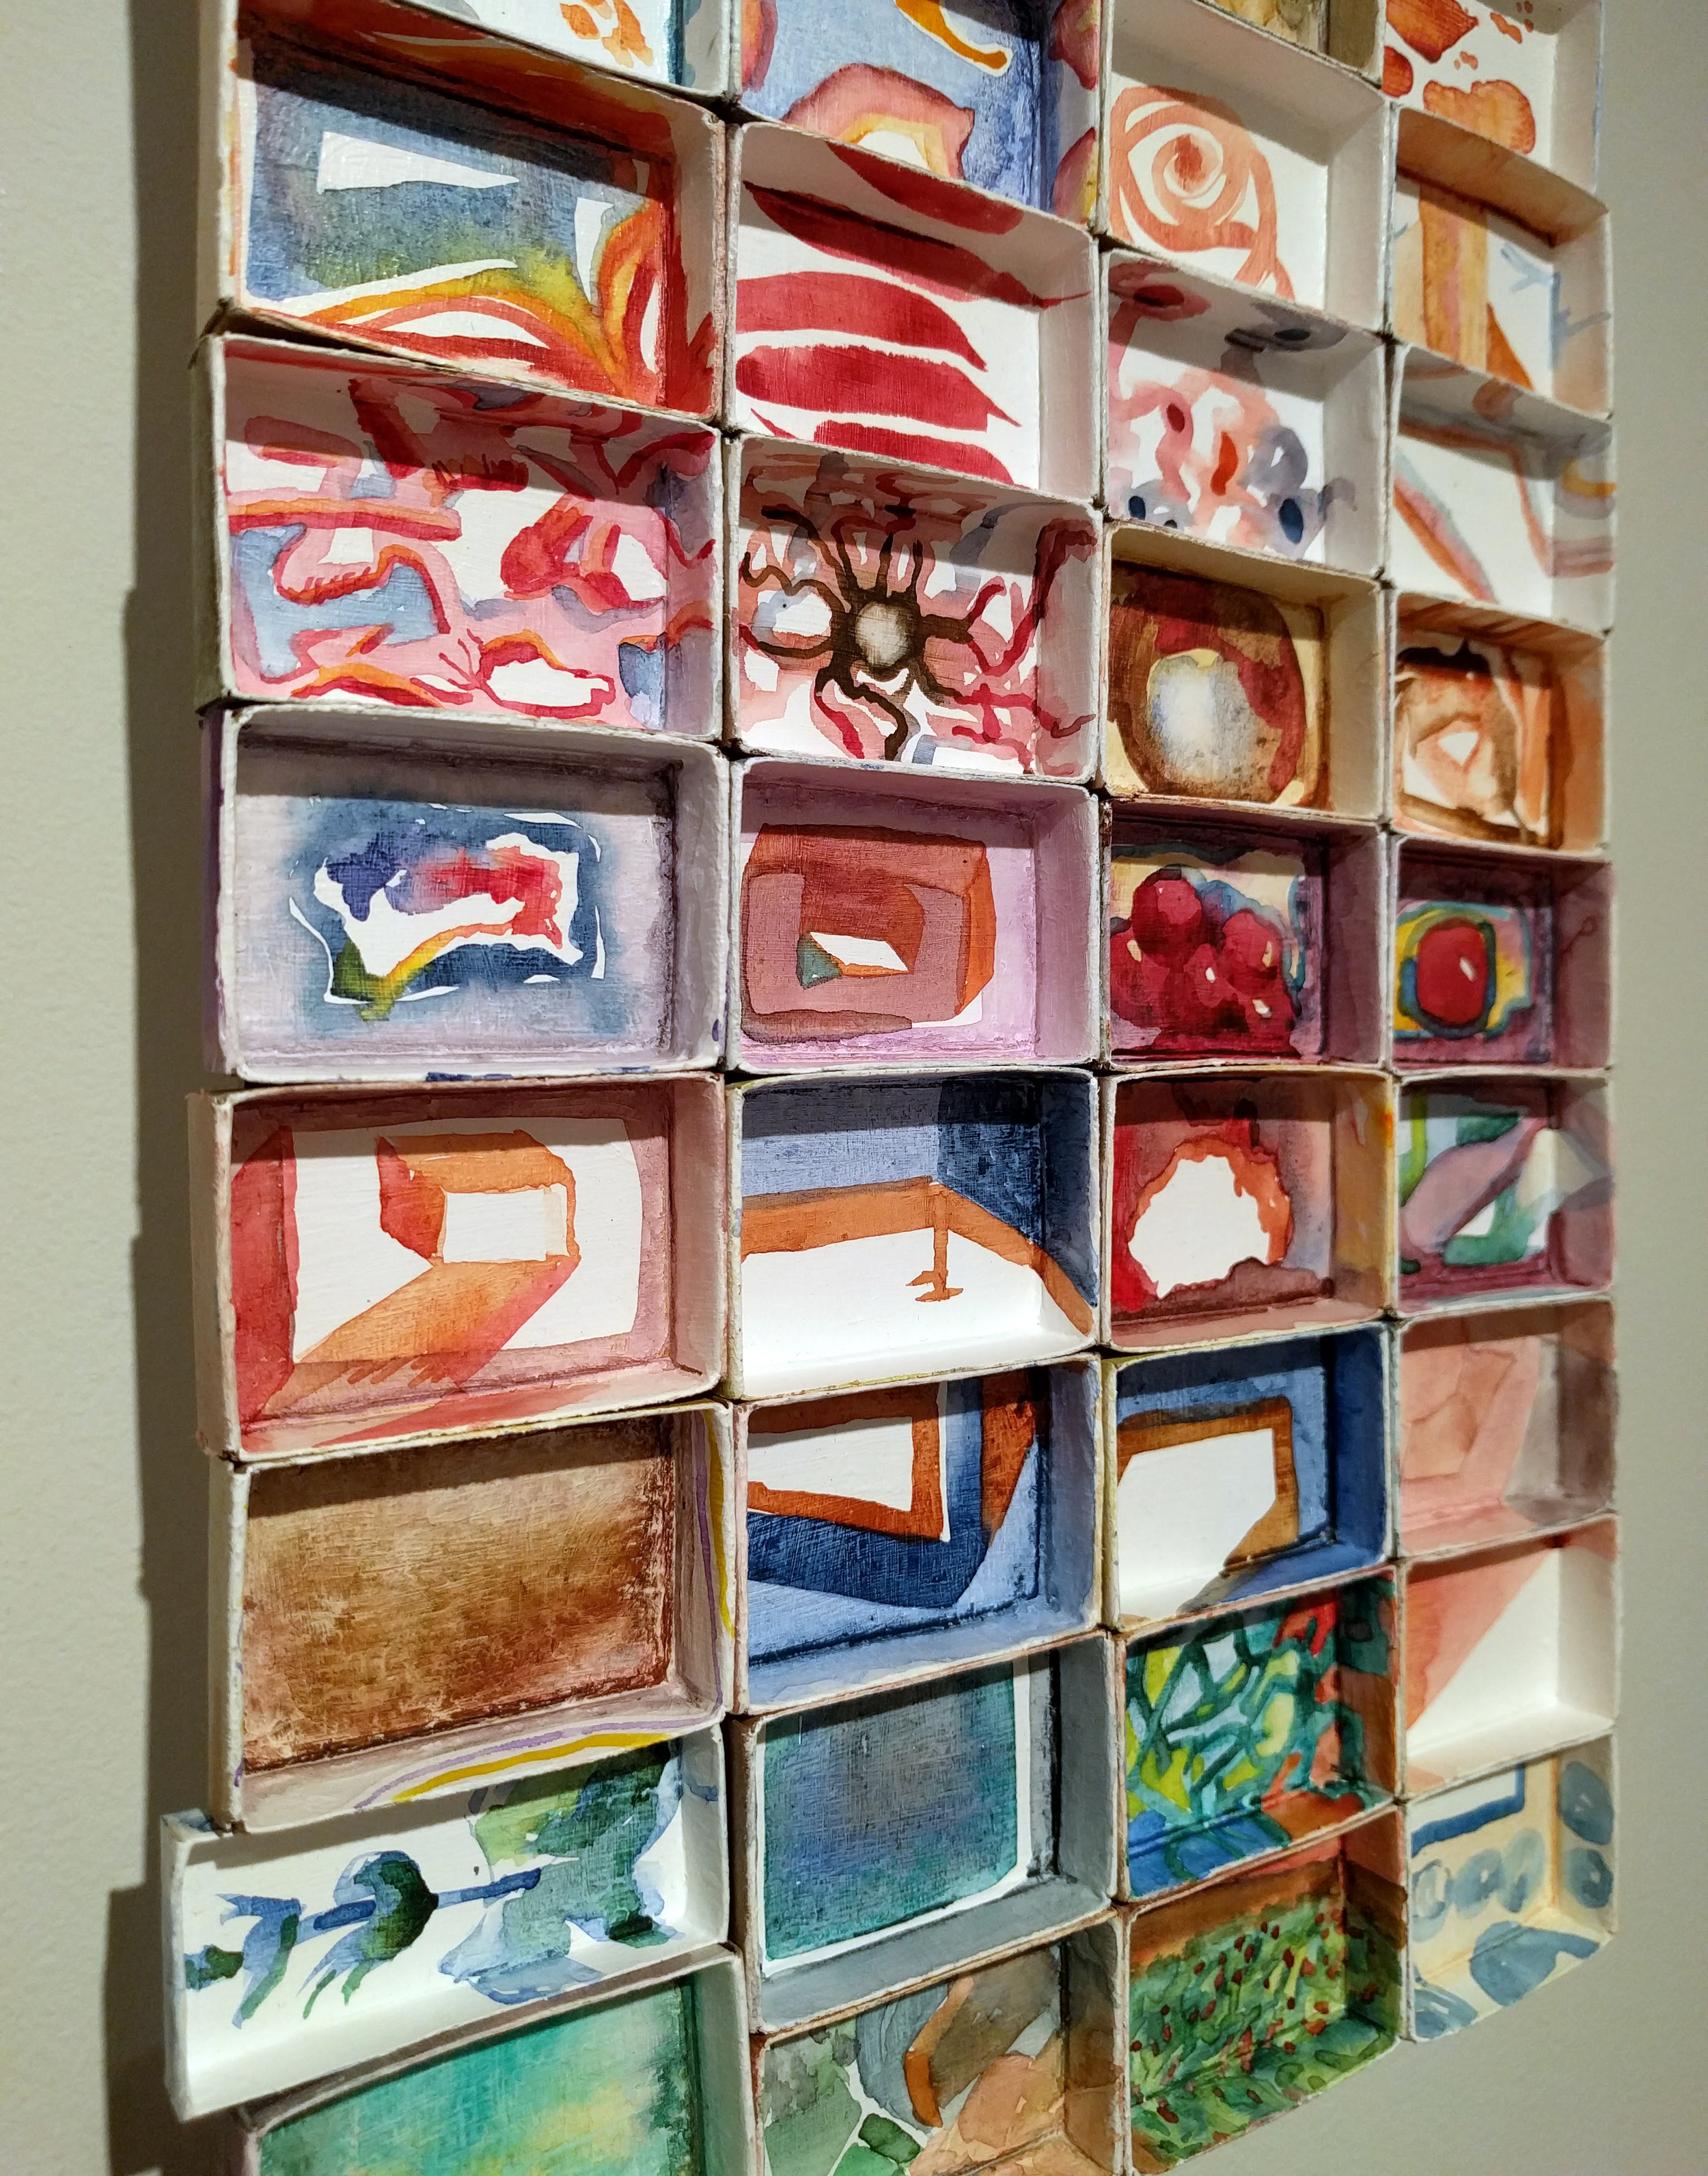 """Victoria Hibbs, """"Safe Place"""" 2015-2016 (detail) watercolor on matchboxes, 9 x 14 in."""